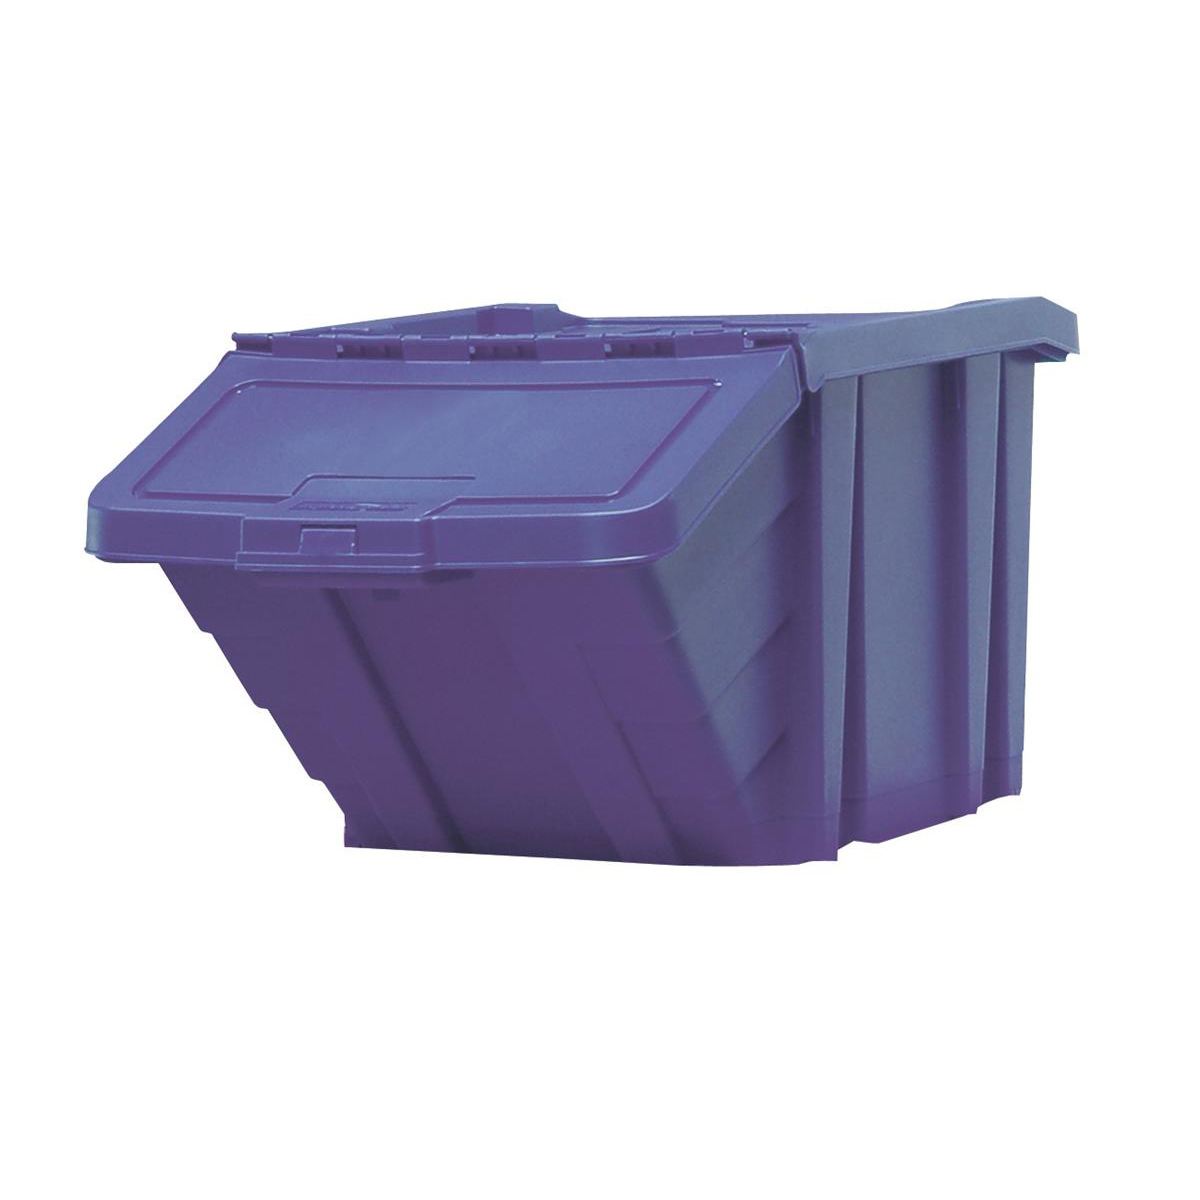 Recycle Storage Bin and Lid Blue 400x635x345mm